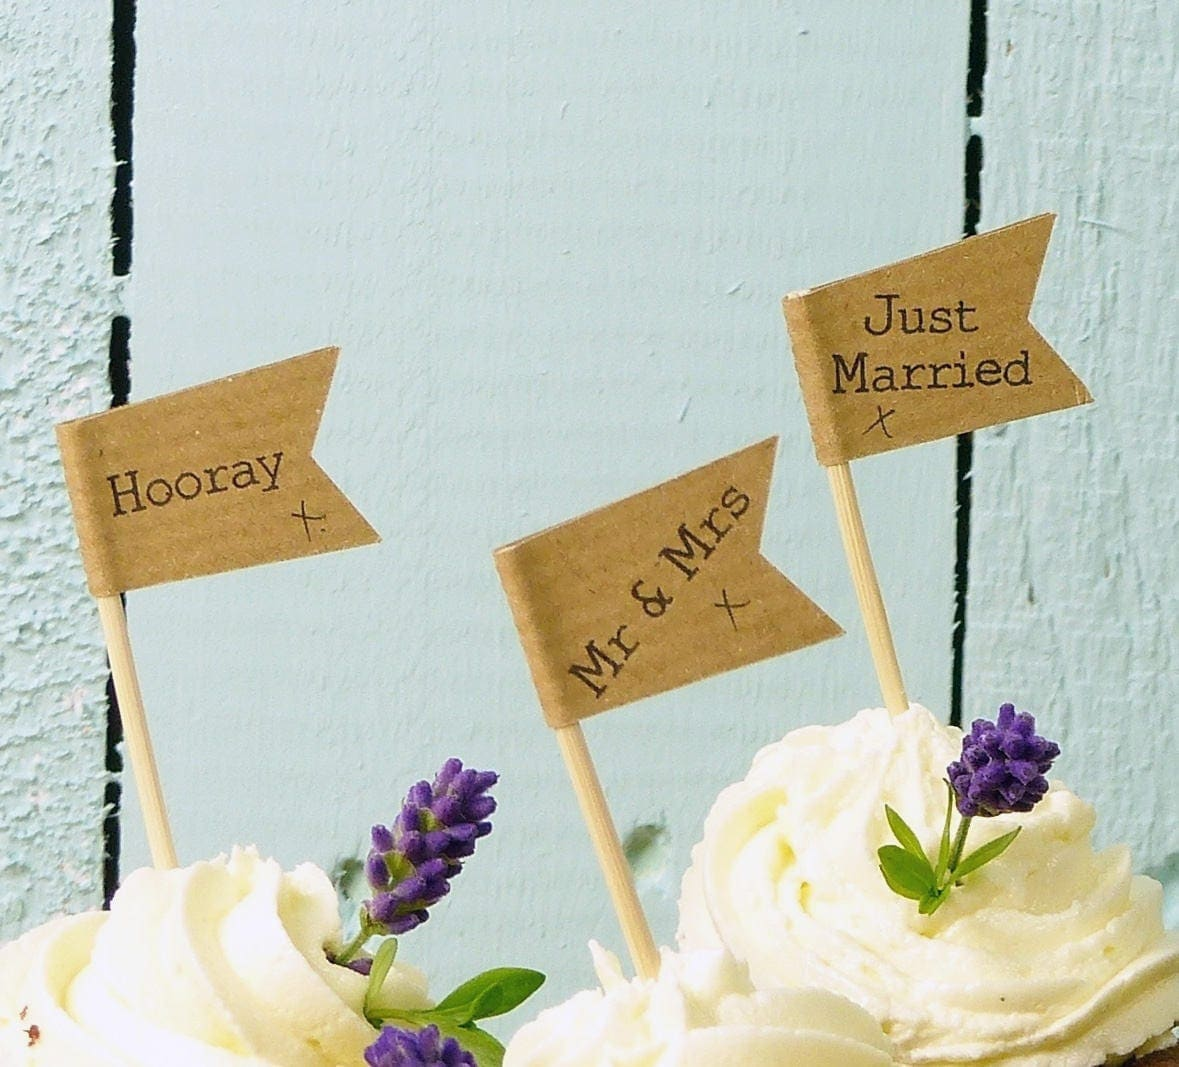 50 Personalised Cupcake Toppers Brown Craft Mr Mrs Cake Flags